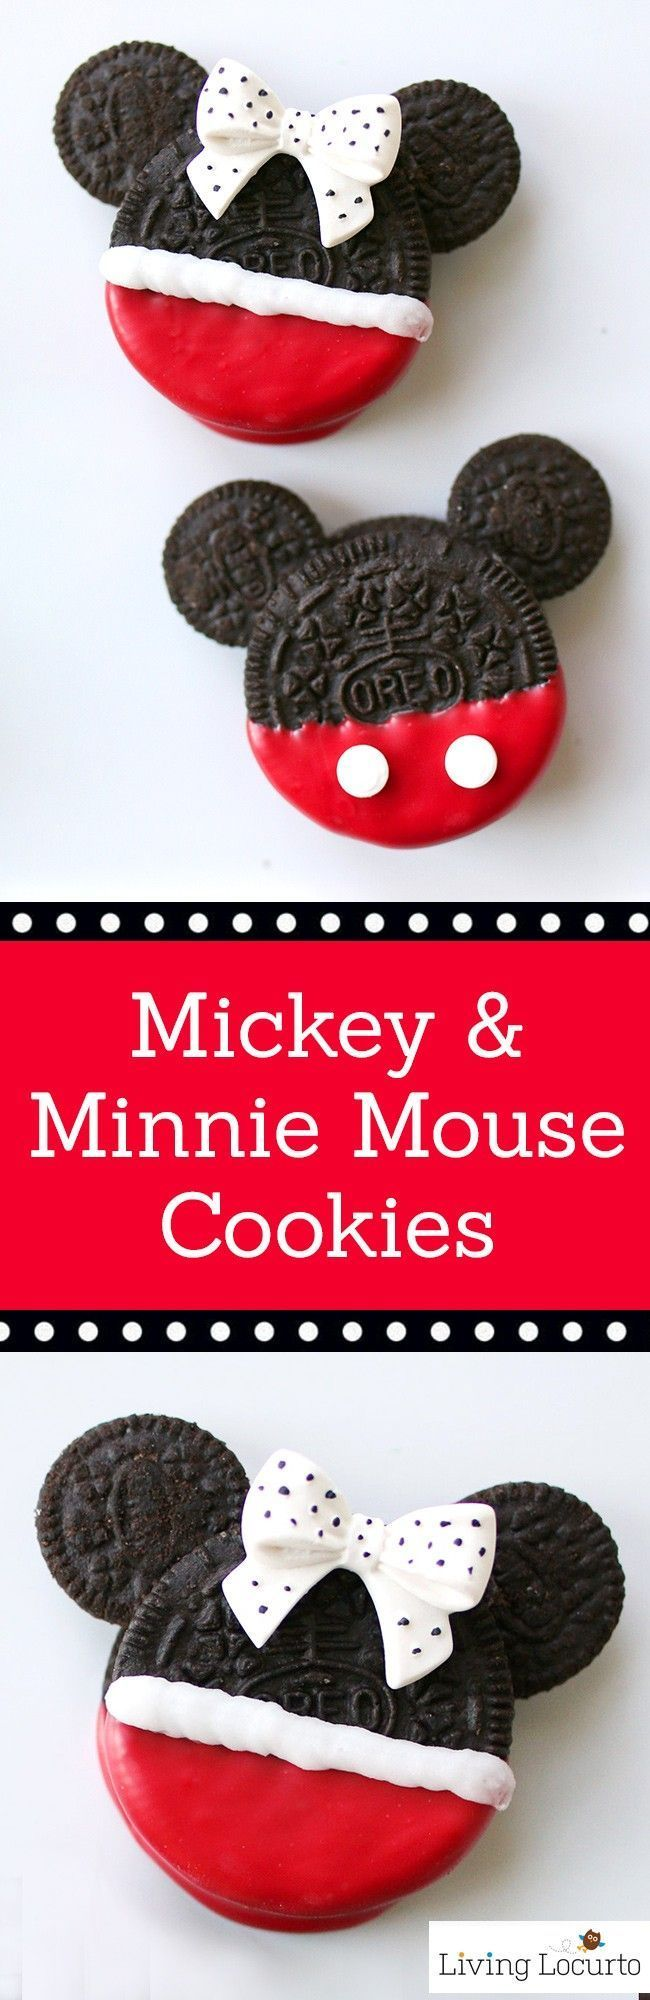 Cute Disney No-Bake Cookies! Mickey